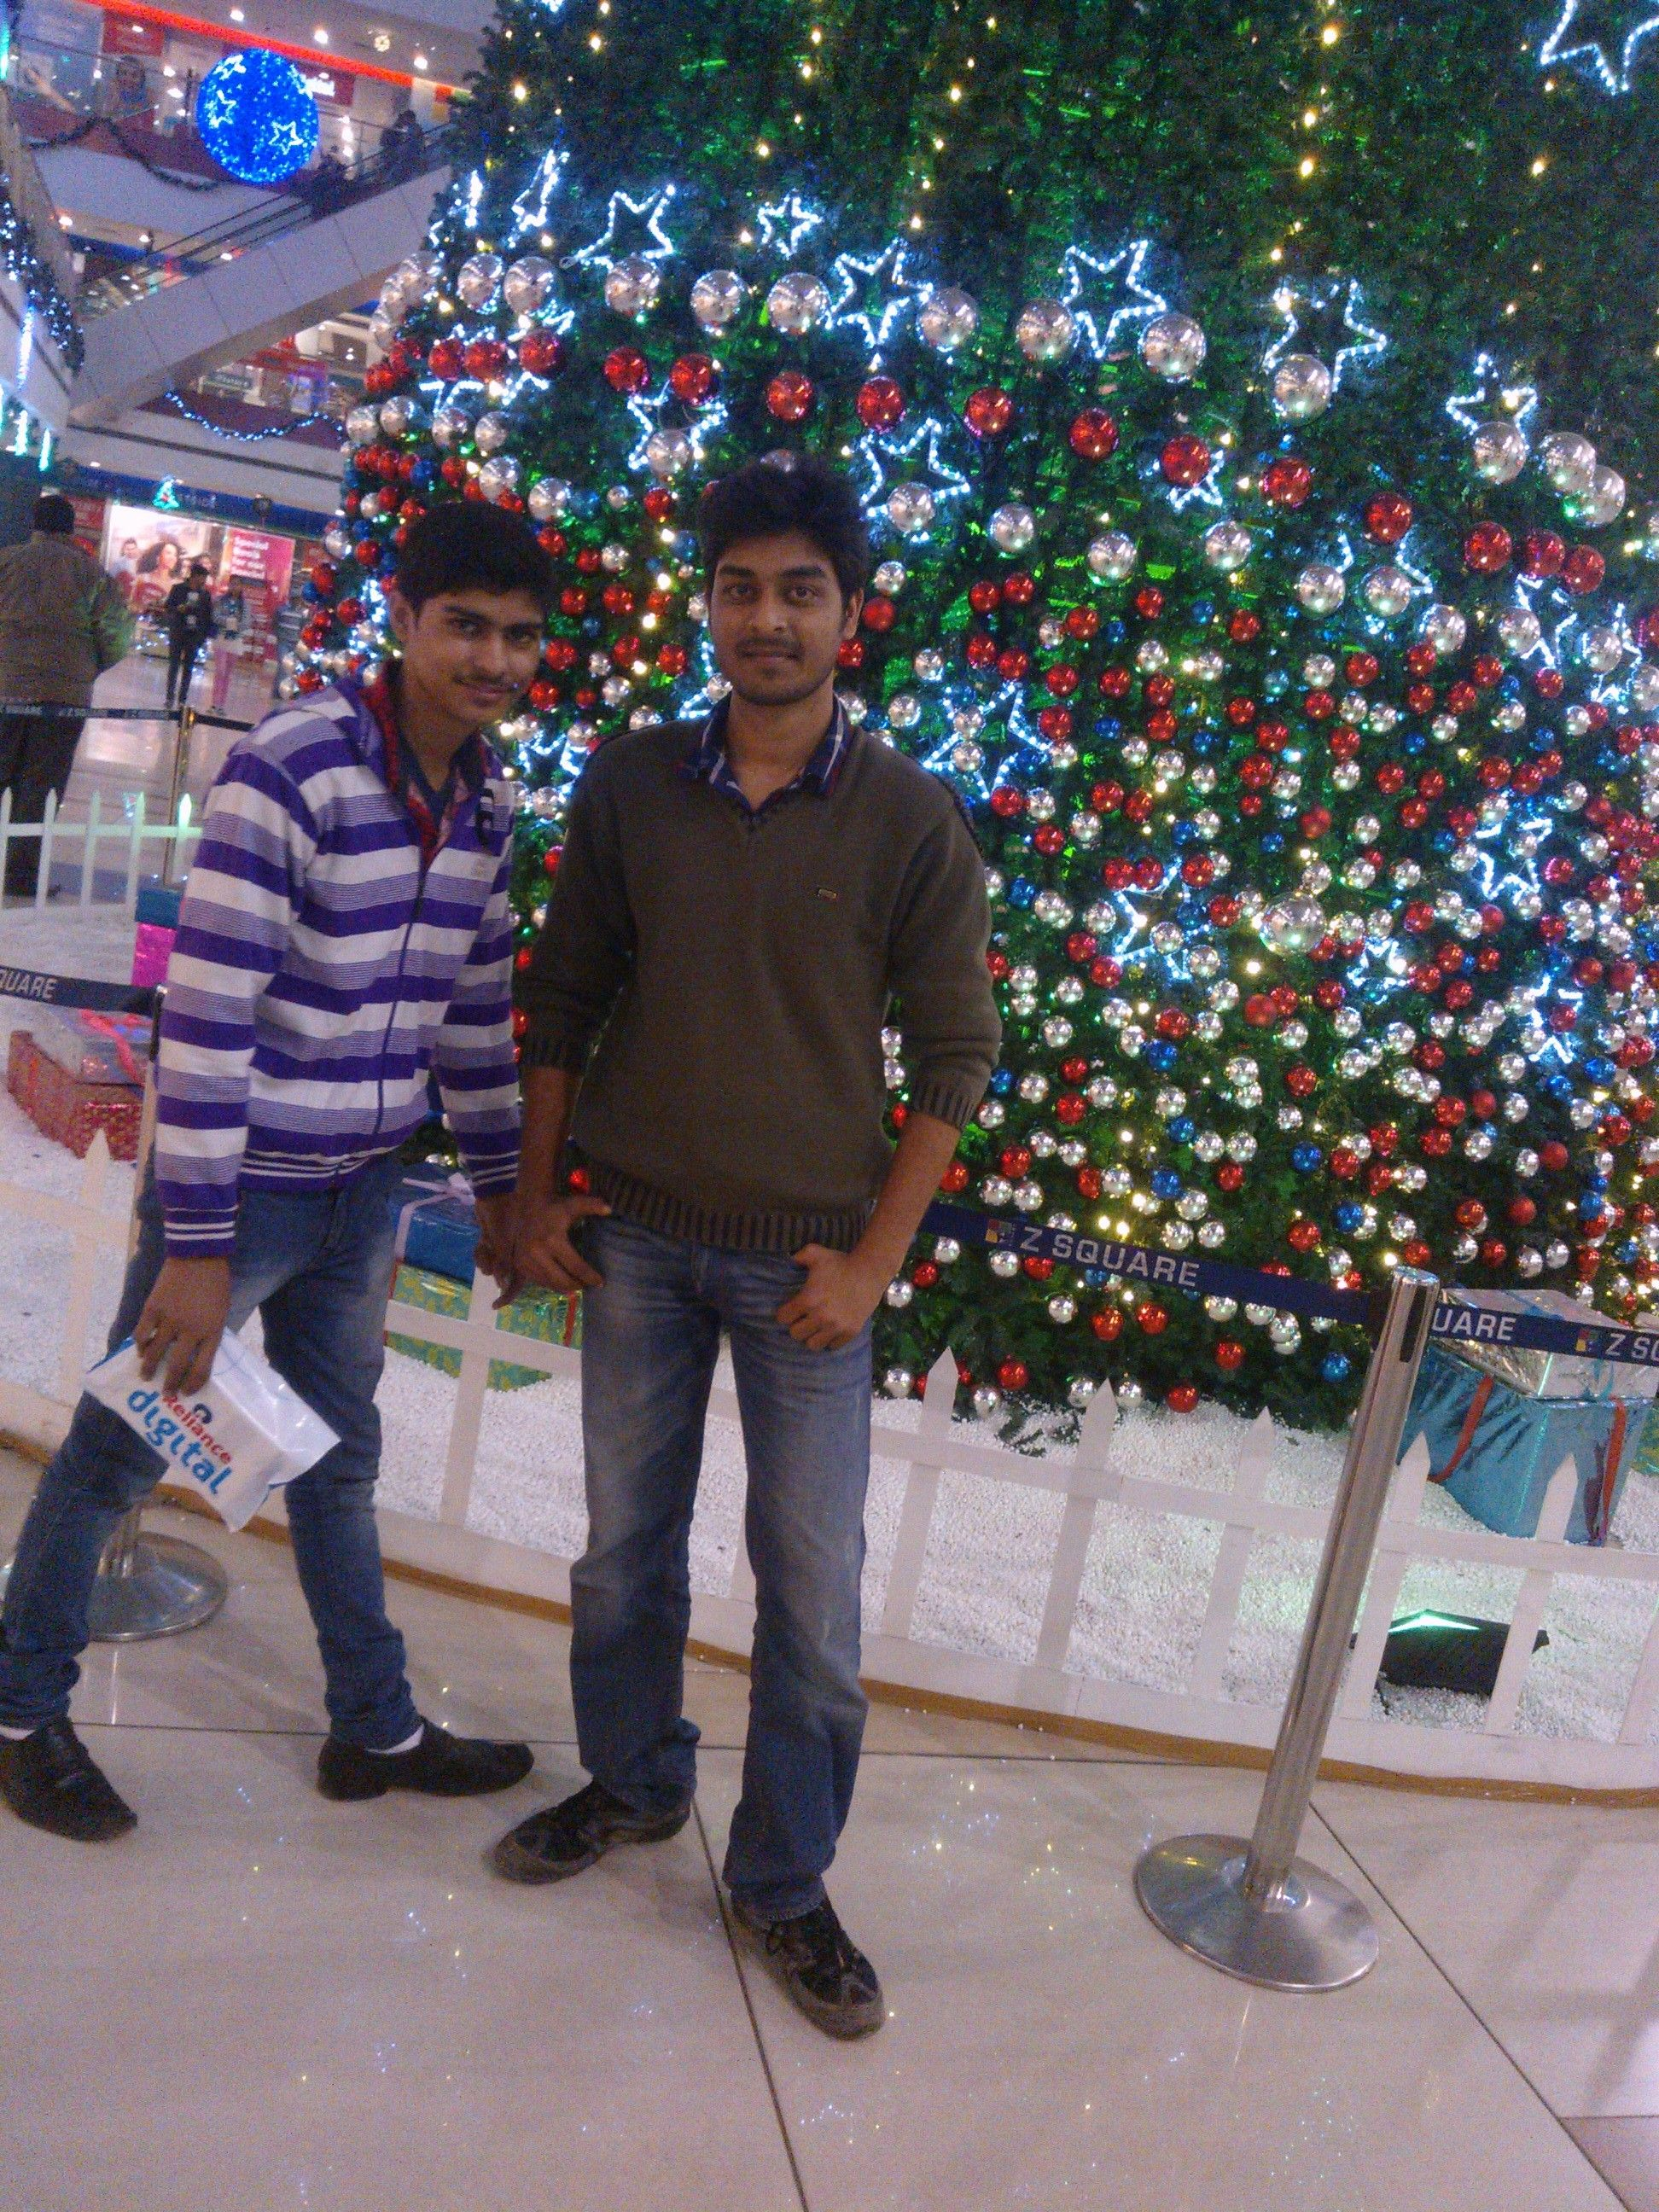 Me And Vivek Bhai At Z Square Mall